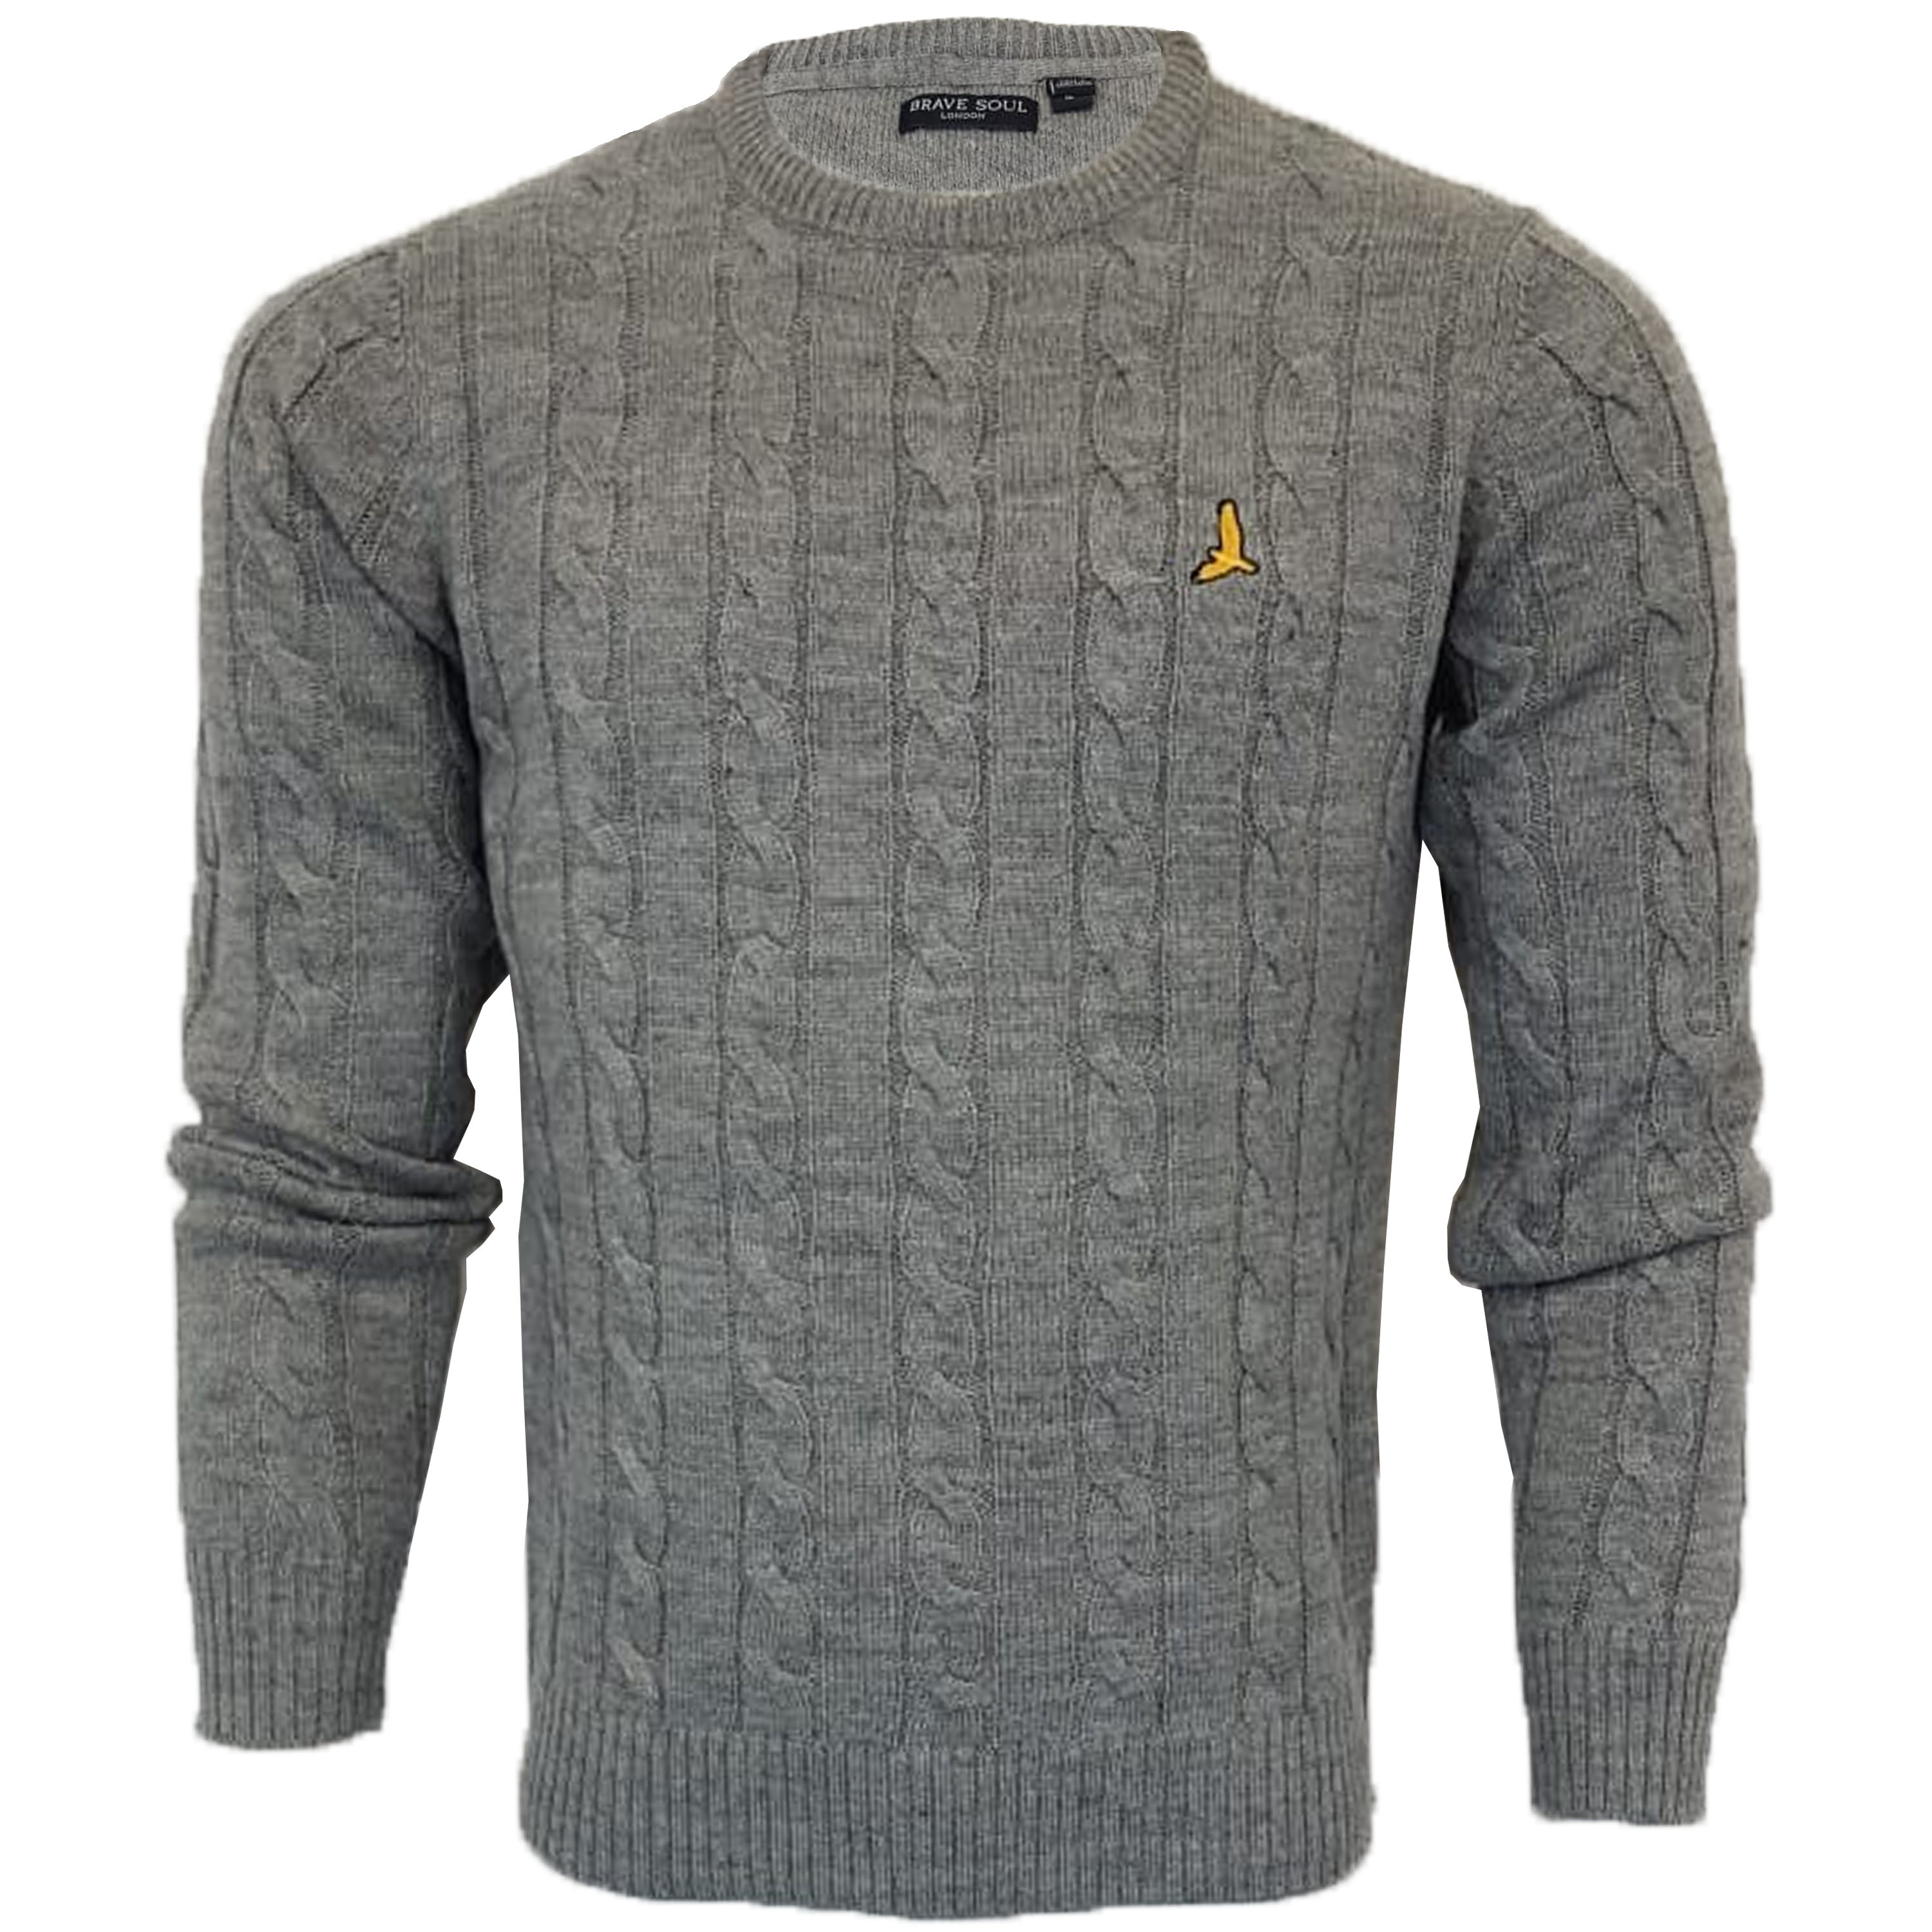 Mens-Jumper-Brave-Soul-Knitted-Sweater-Pullover-GOODWIN-Crew-Neck-Top-Winter-New thumbnail 5